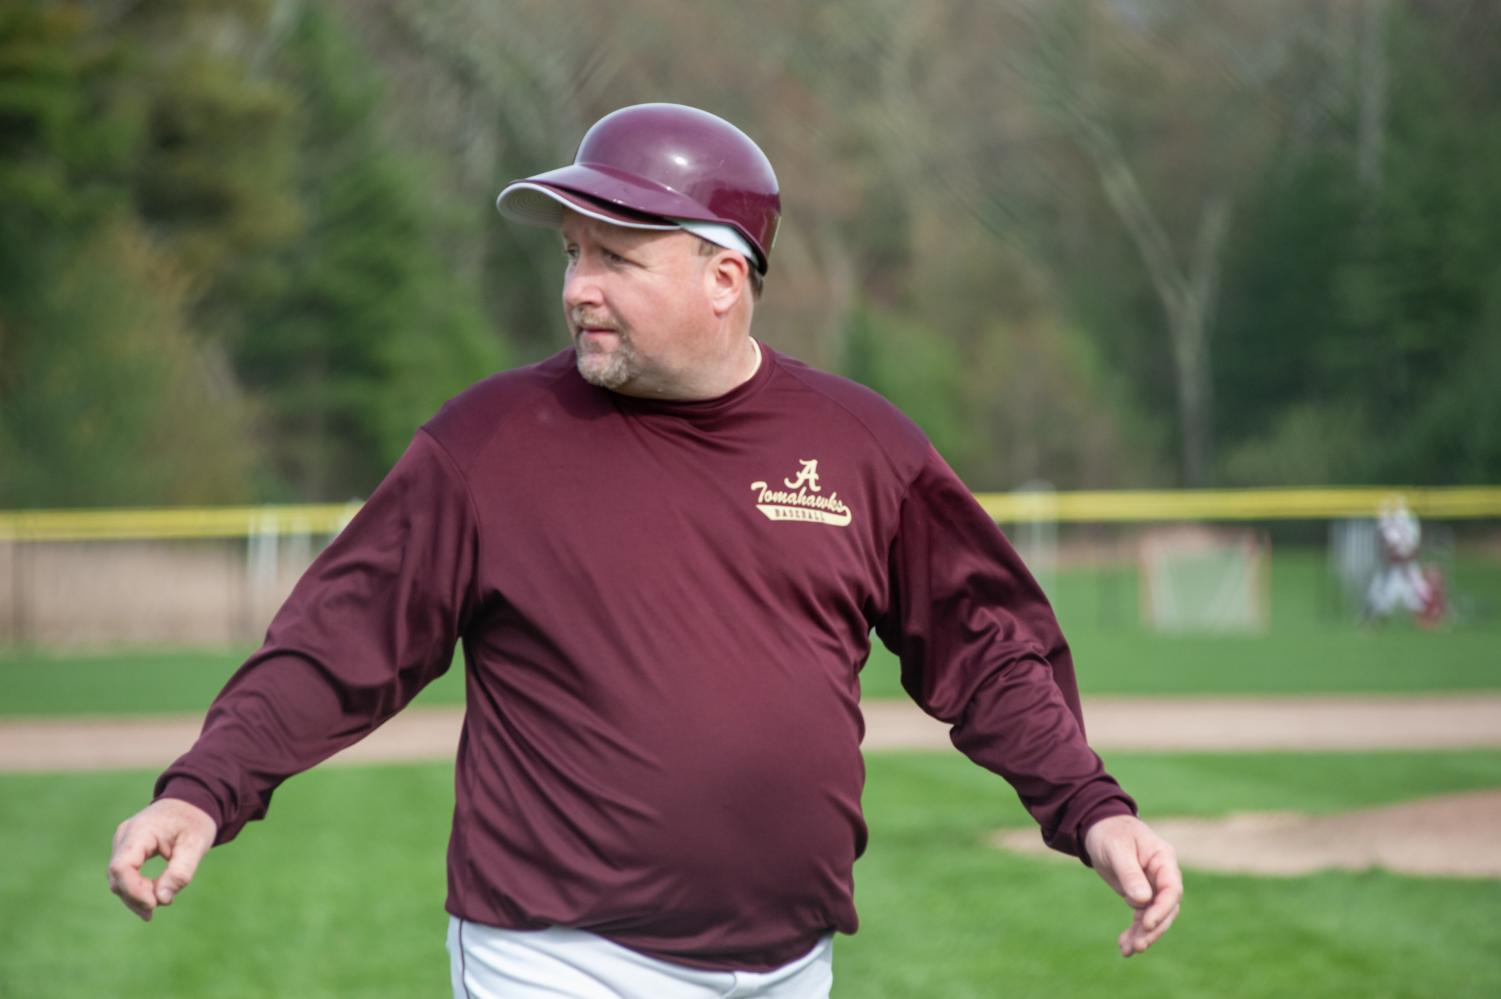 As the inning closes in the game against Marlborough on April 29, new baseball varsity coach Brian Doherty looks back to praise one of his players.